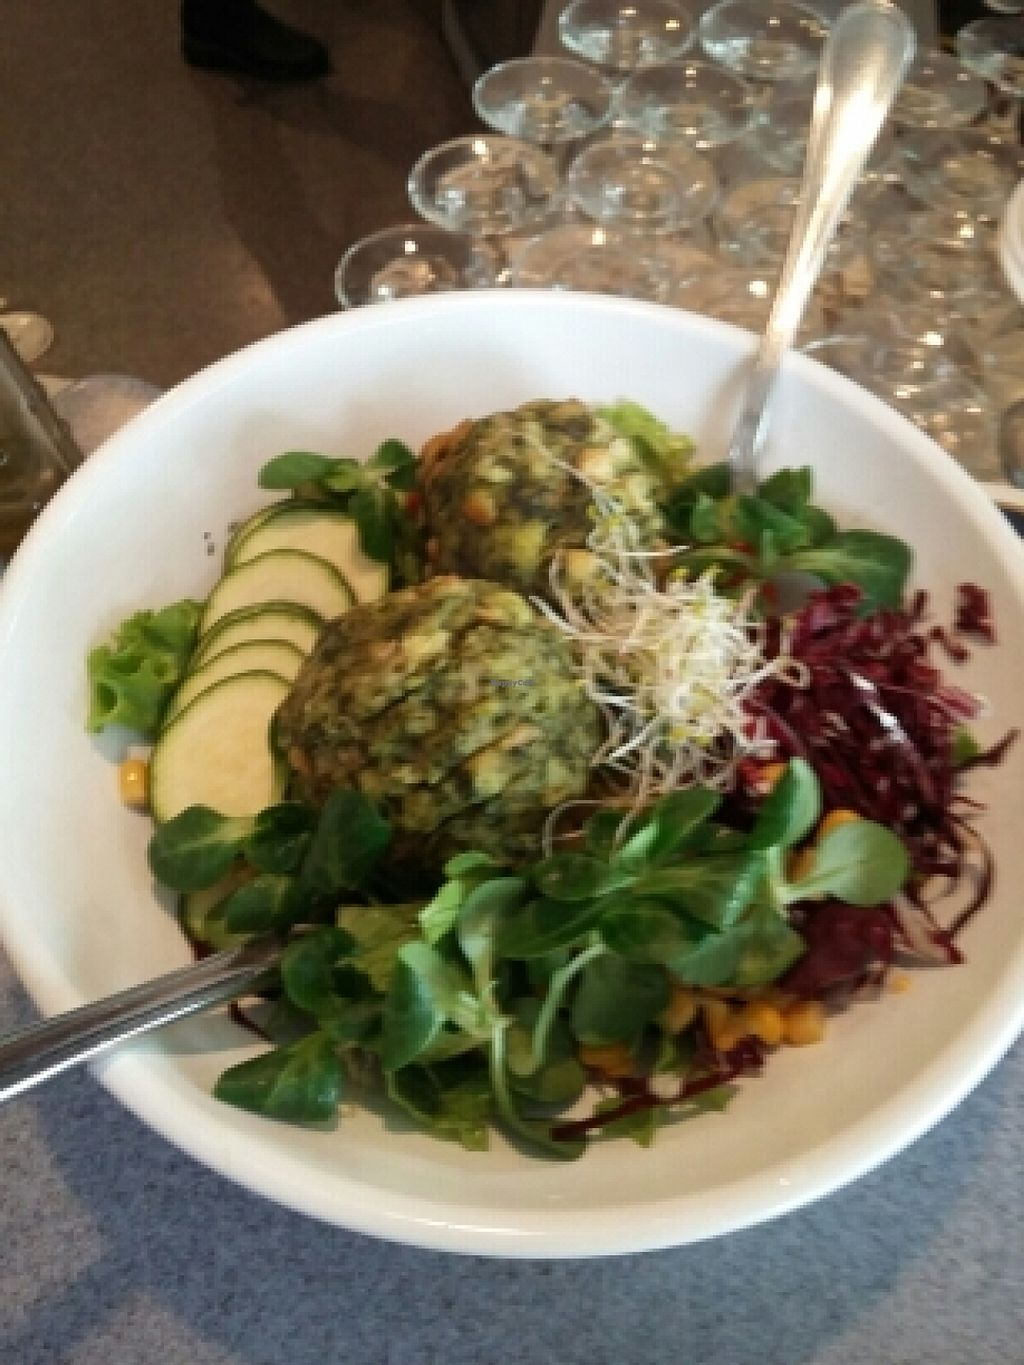 """Photo of Alte Muhle  by <a href=""""/members/profile/martins.diary"""">martins.diary</a> <br/>kamut dumplings with spinach and a winter bed of lettuce <br/> January 7, 2016  - <a href='/contact/abuse/image/64497/131363'>Report</a>"""